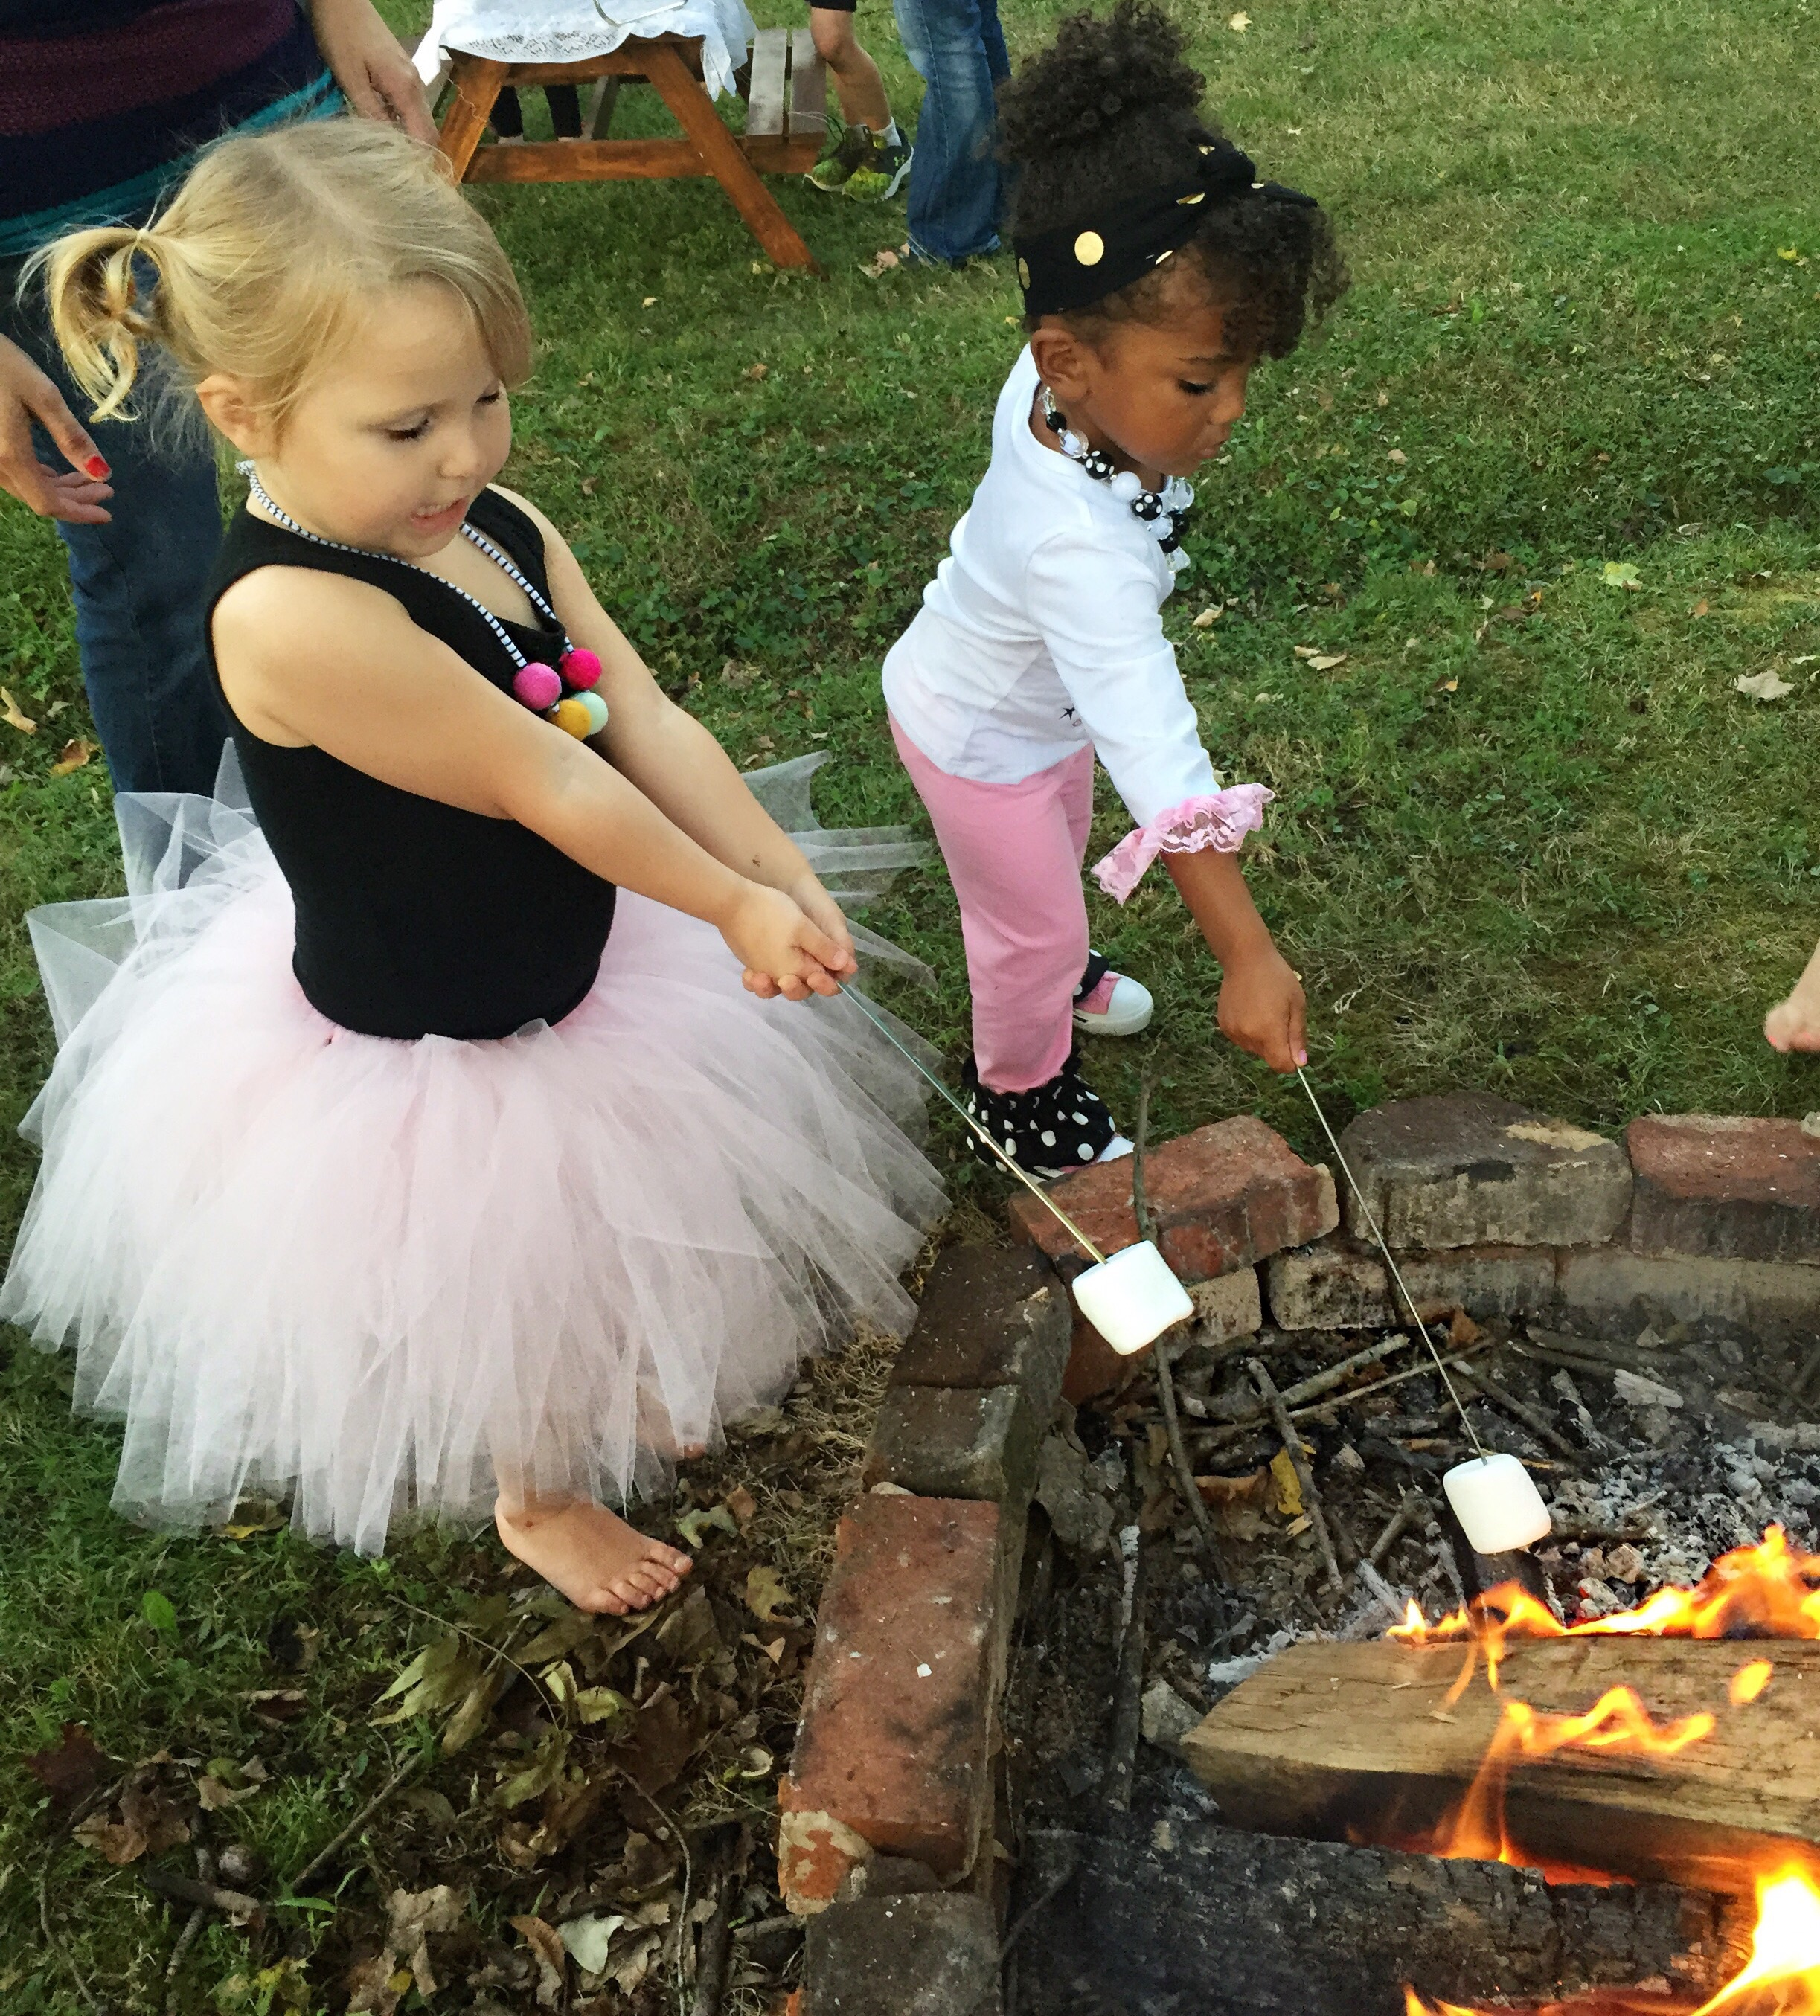 After dinner we roasted marshmallows and made smore's!! It was a lot of fun. Harper was all over the marshmallow part!